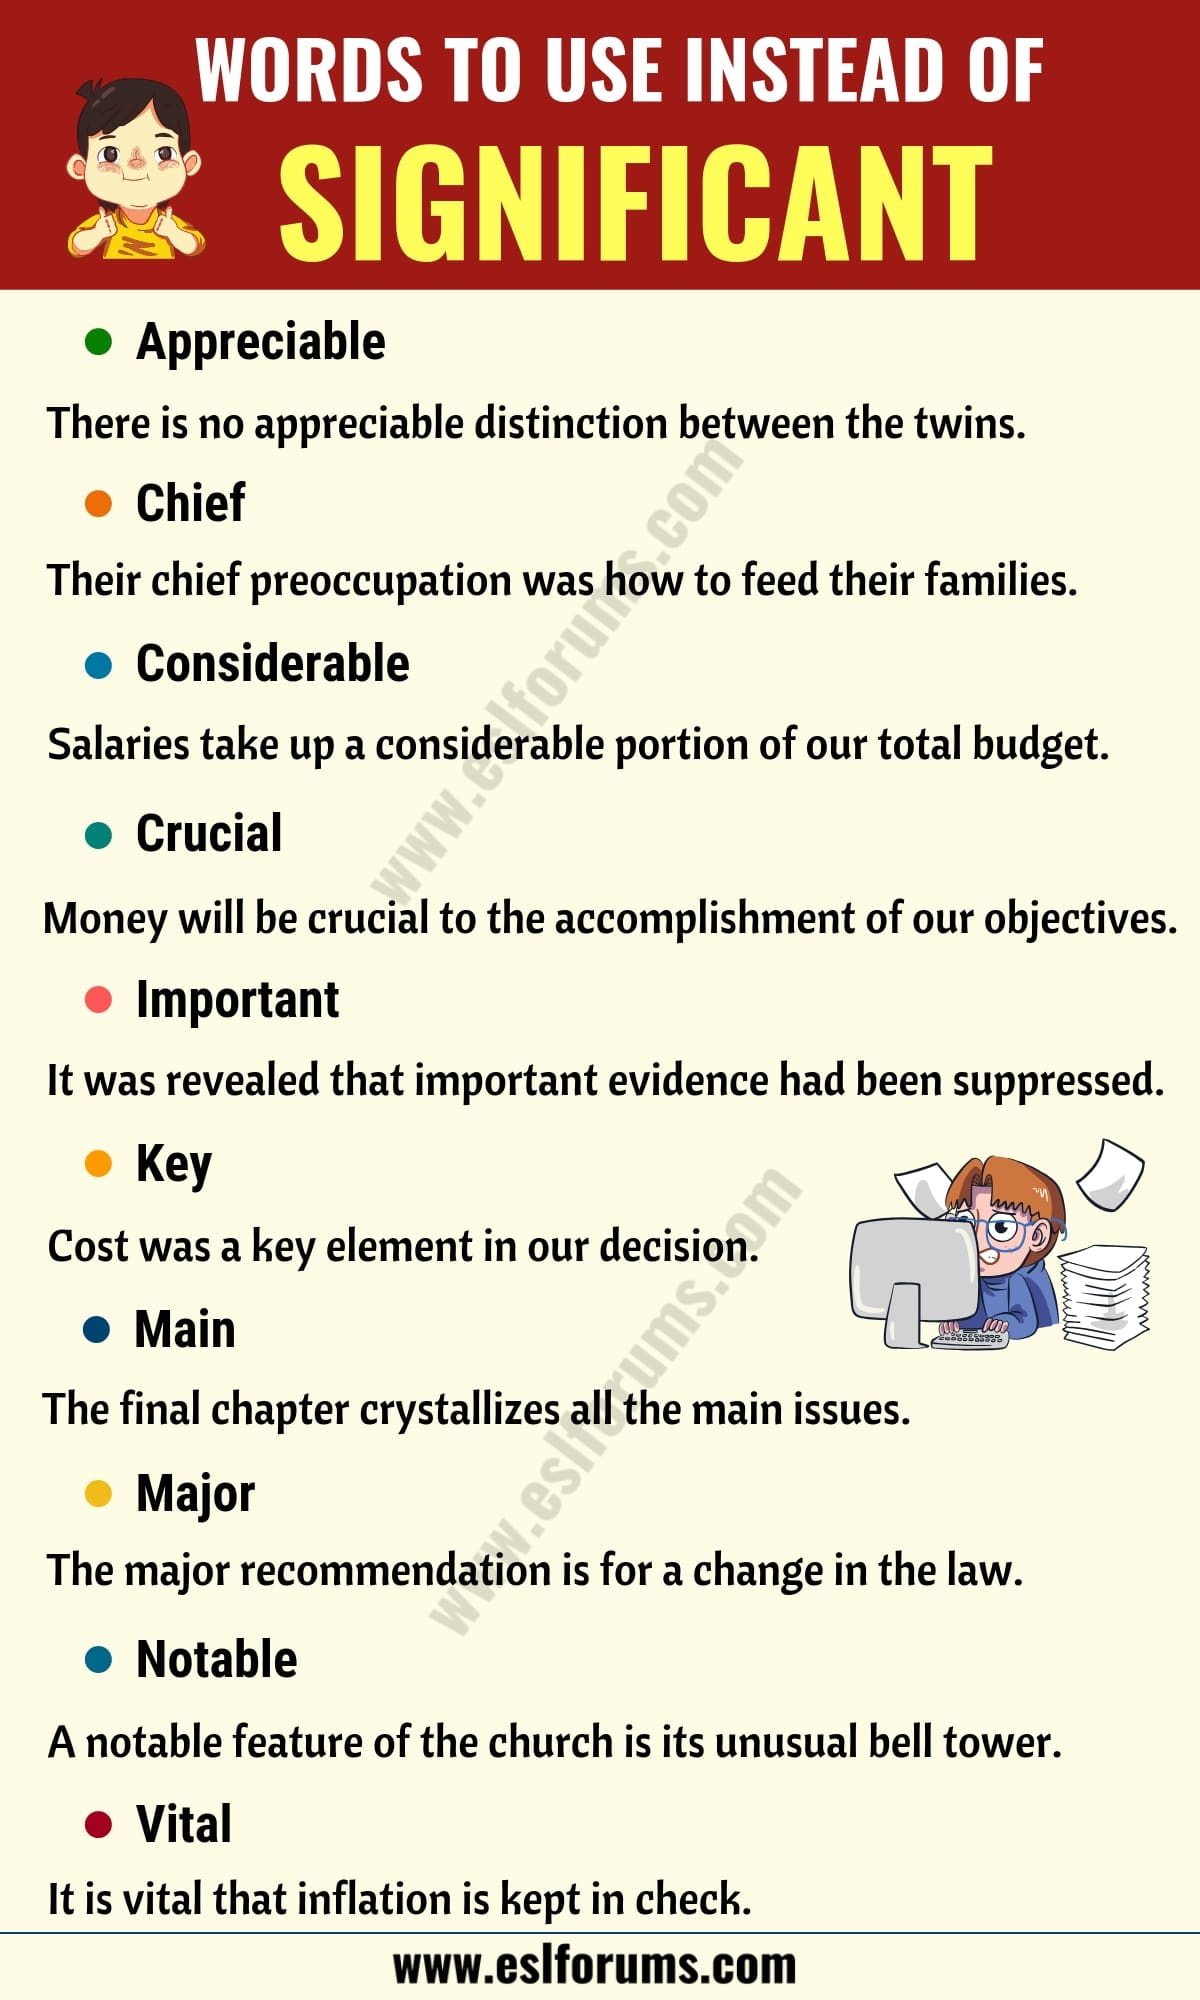 SIGNIFICANT Synonym: List of 27 Synonyms for Significant in English